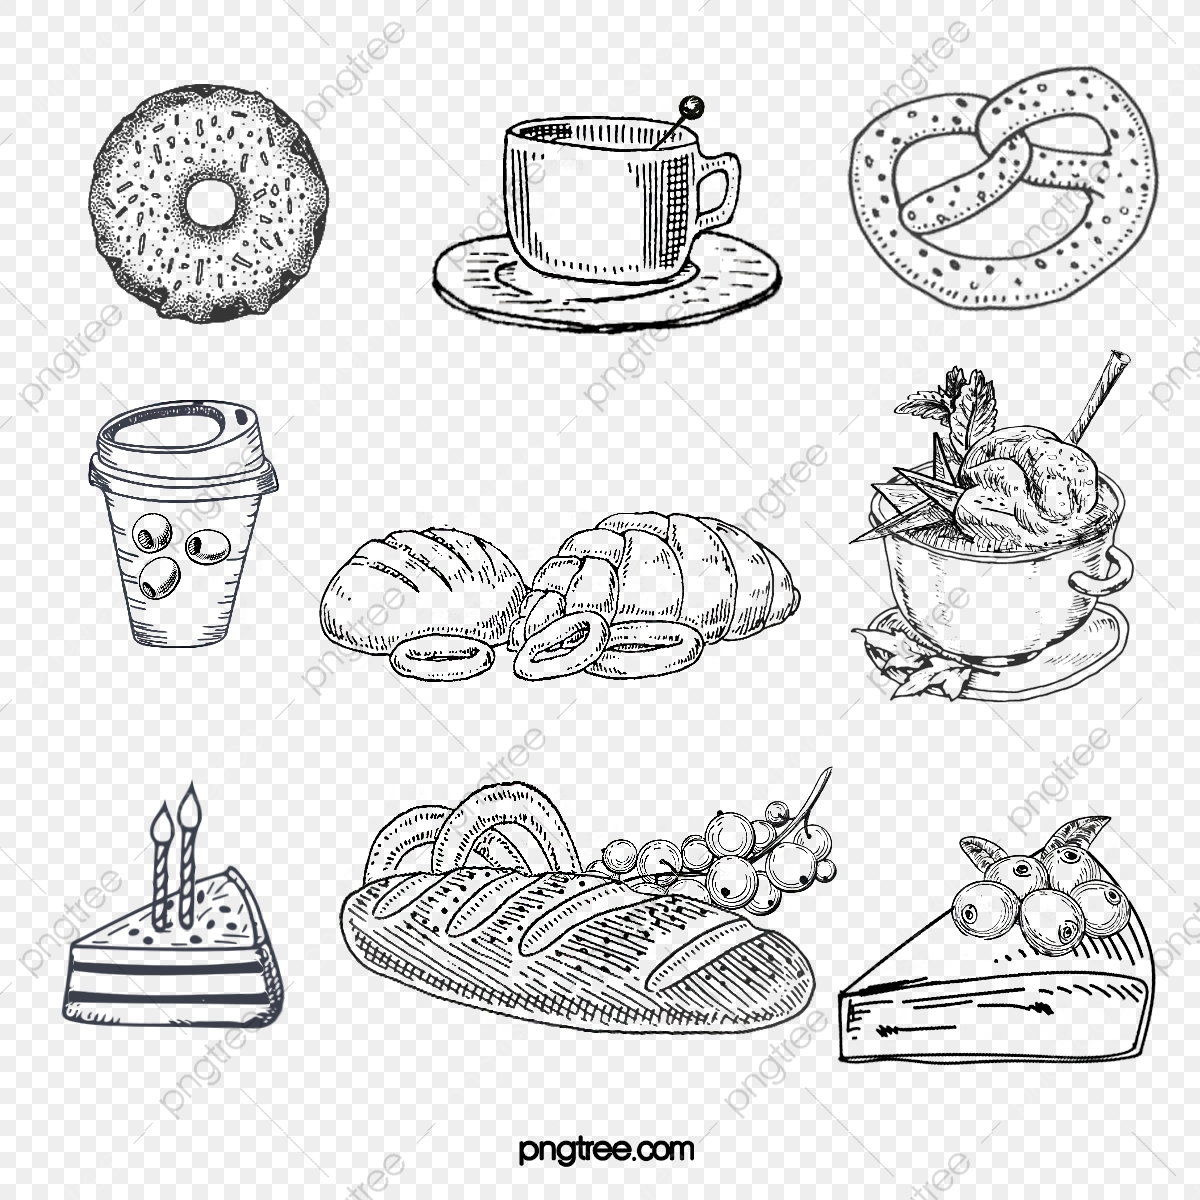 Hand Drawn Black And White Sketch Line Sketching Elements